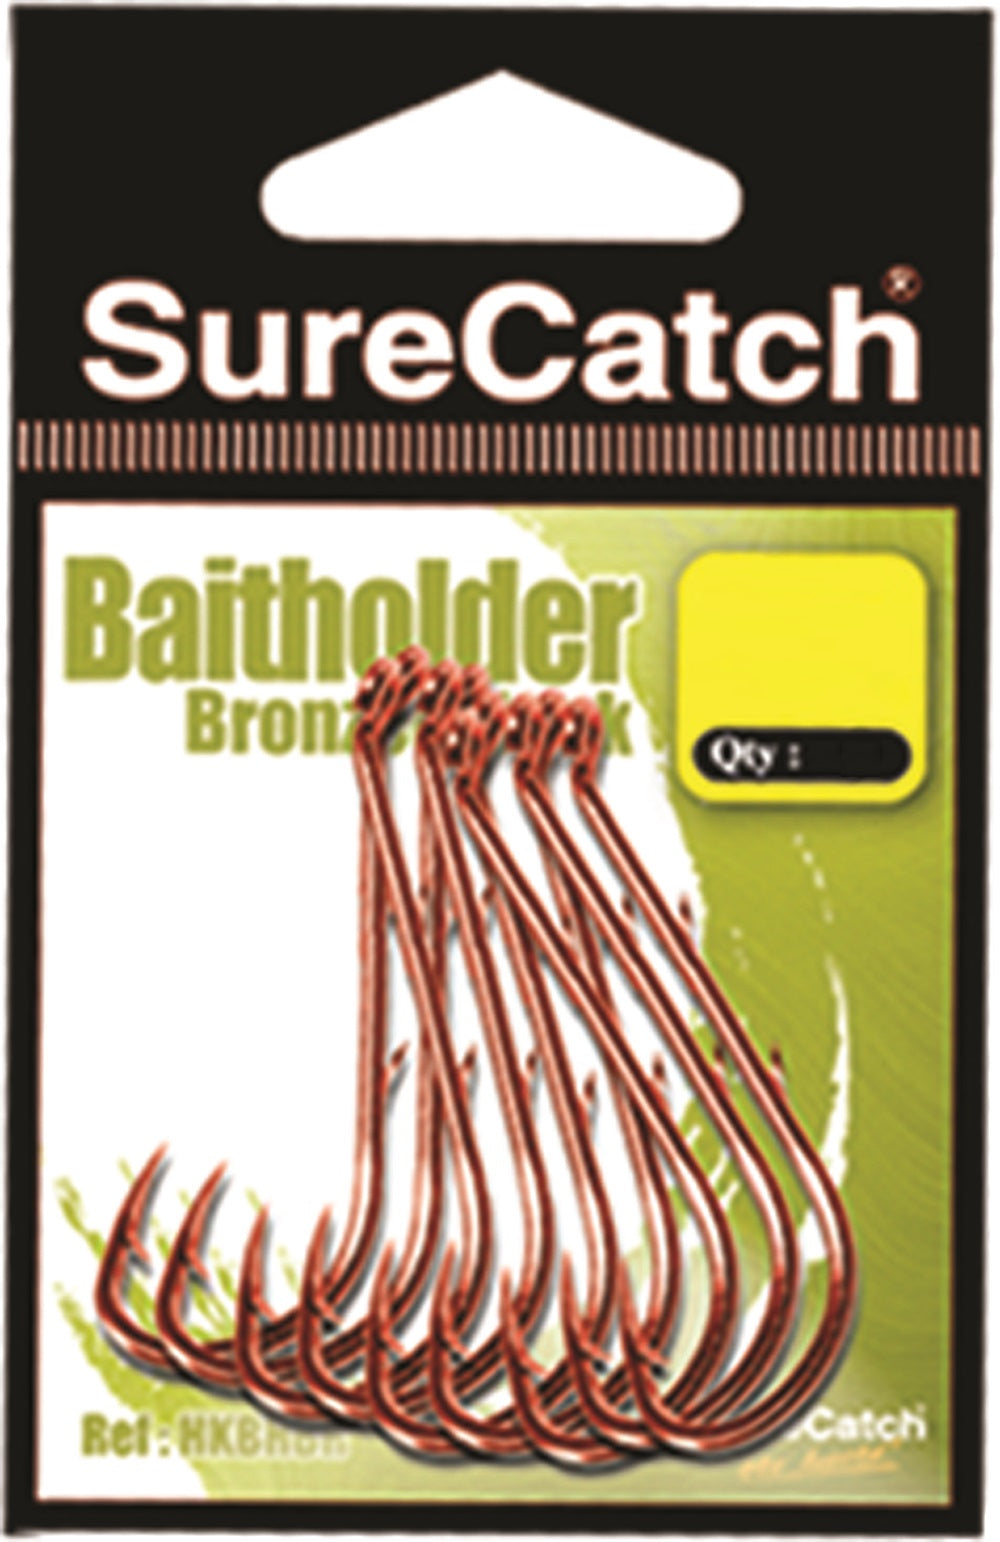 Sure Catch Bronzed Baitholder Hook